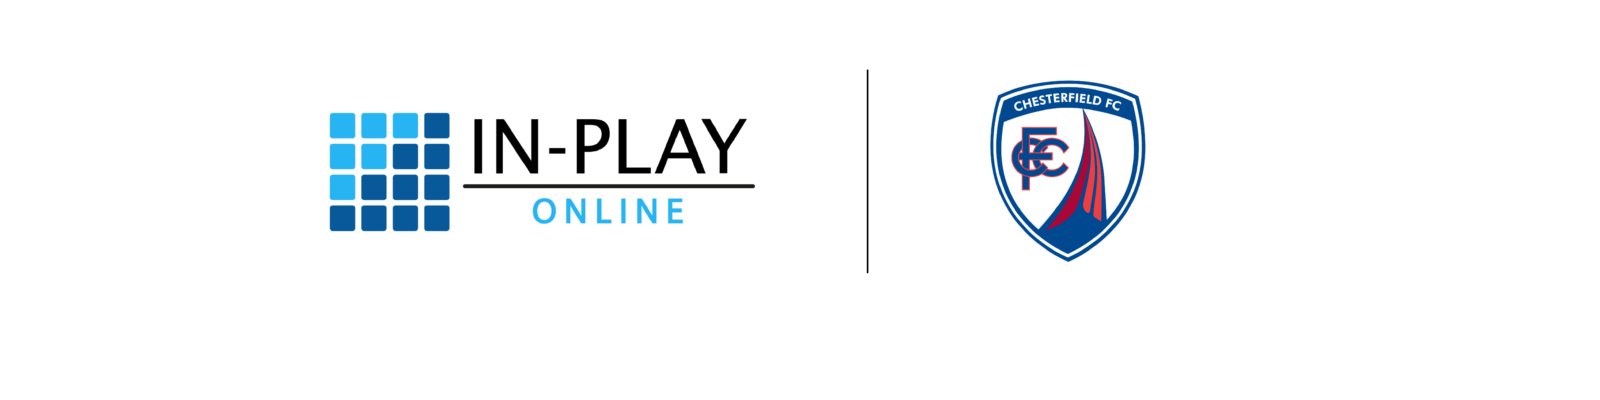 Chesterfield FC Choose In-Play Online